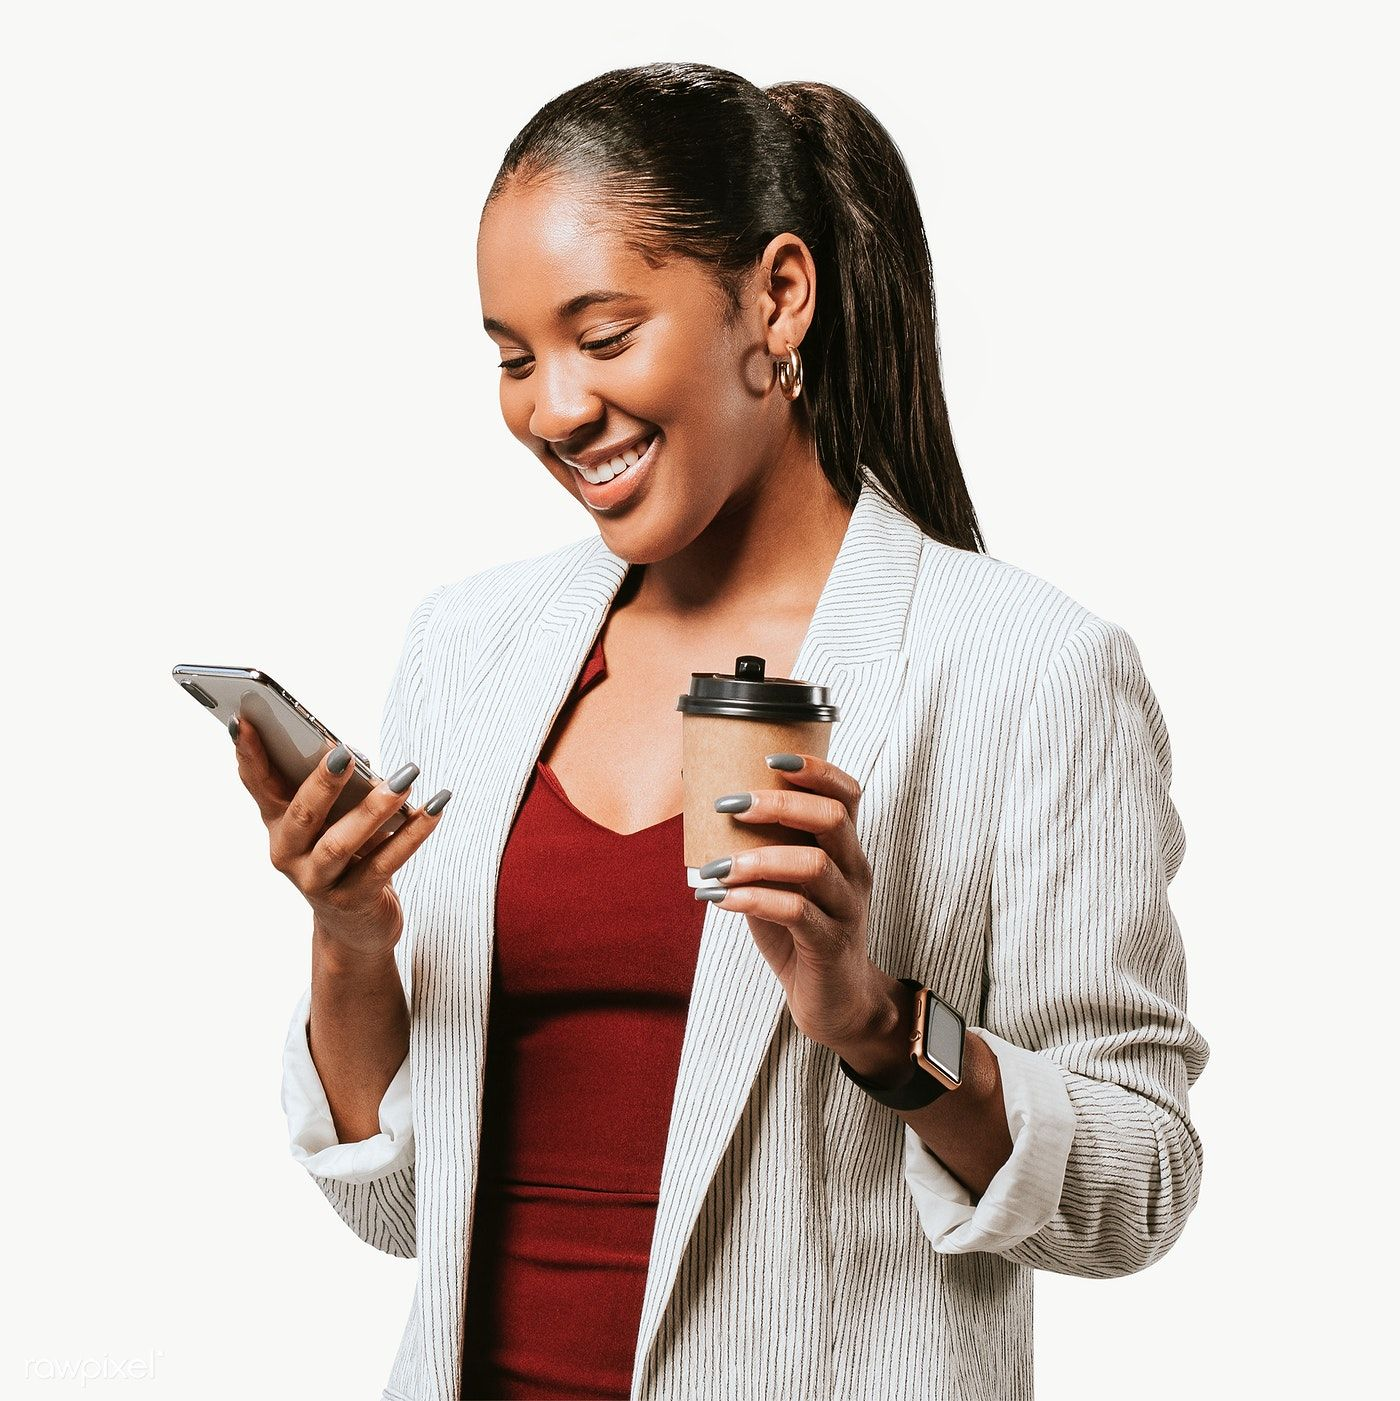 Happy Woman In A Blazer With A Phone Transparent Png Free Image By Rawpixel Com Felix Happy Women African American Women Fashion Women Talk